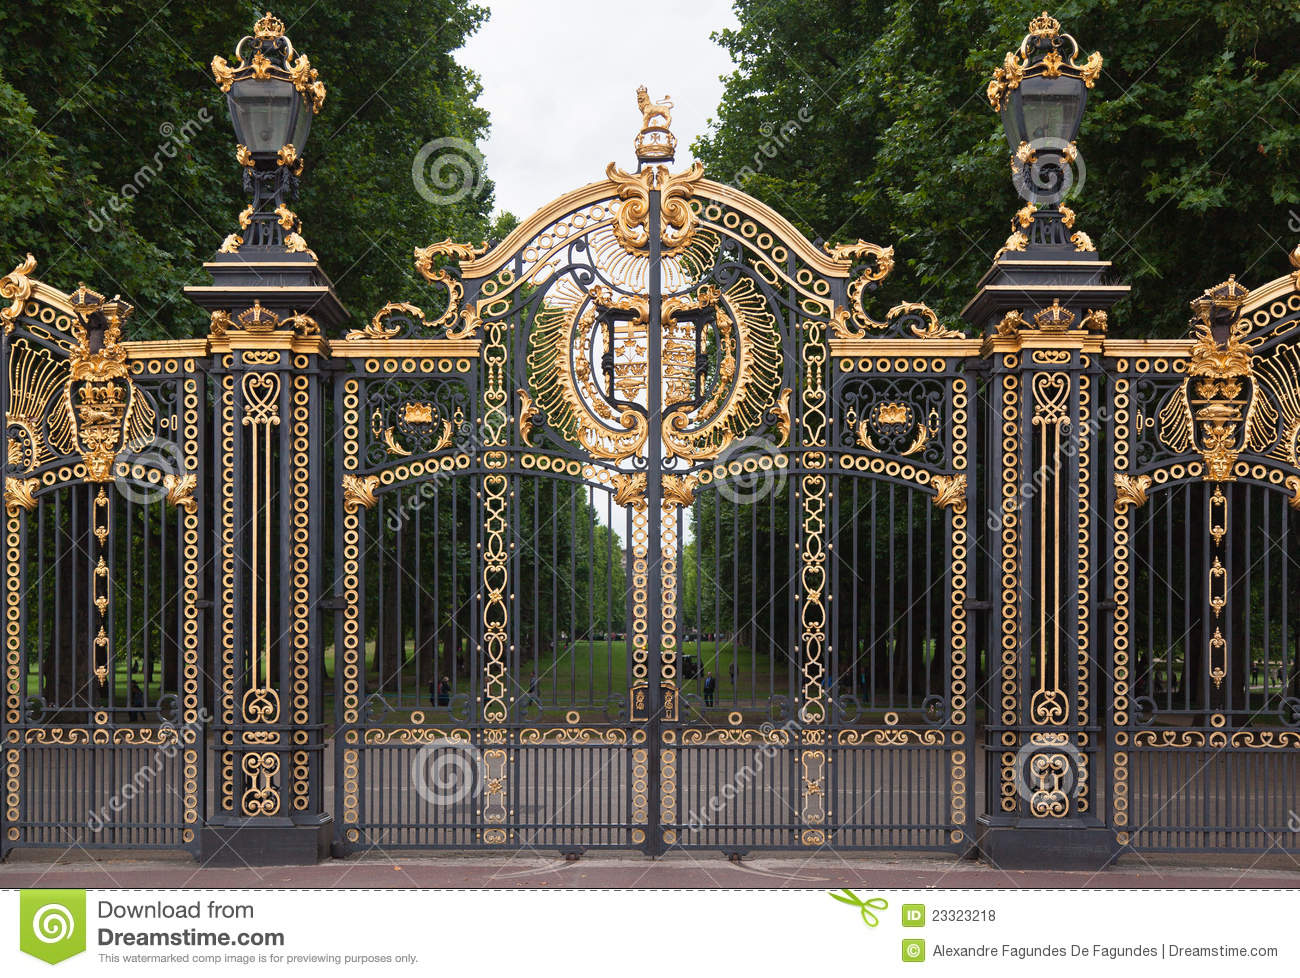 Buckingham Palace Gate London England Royalty Free Stock Photos.